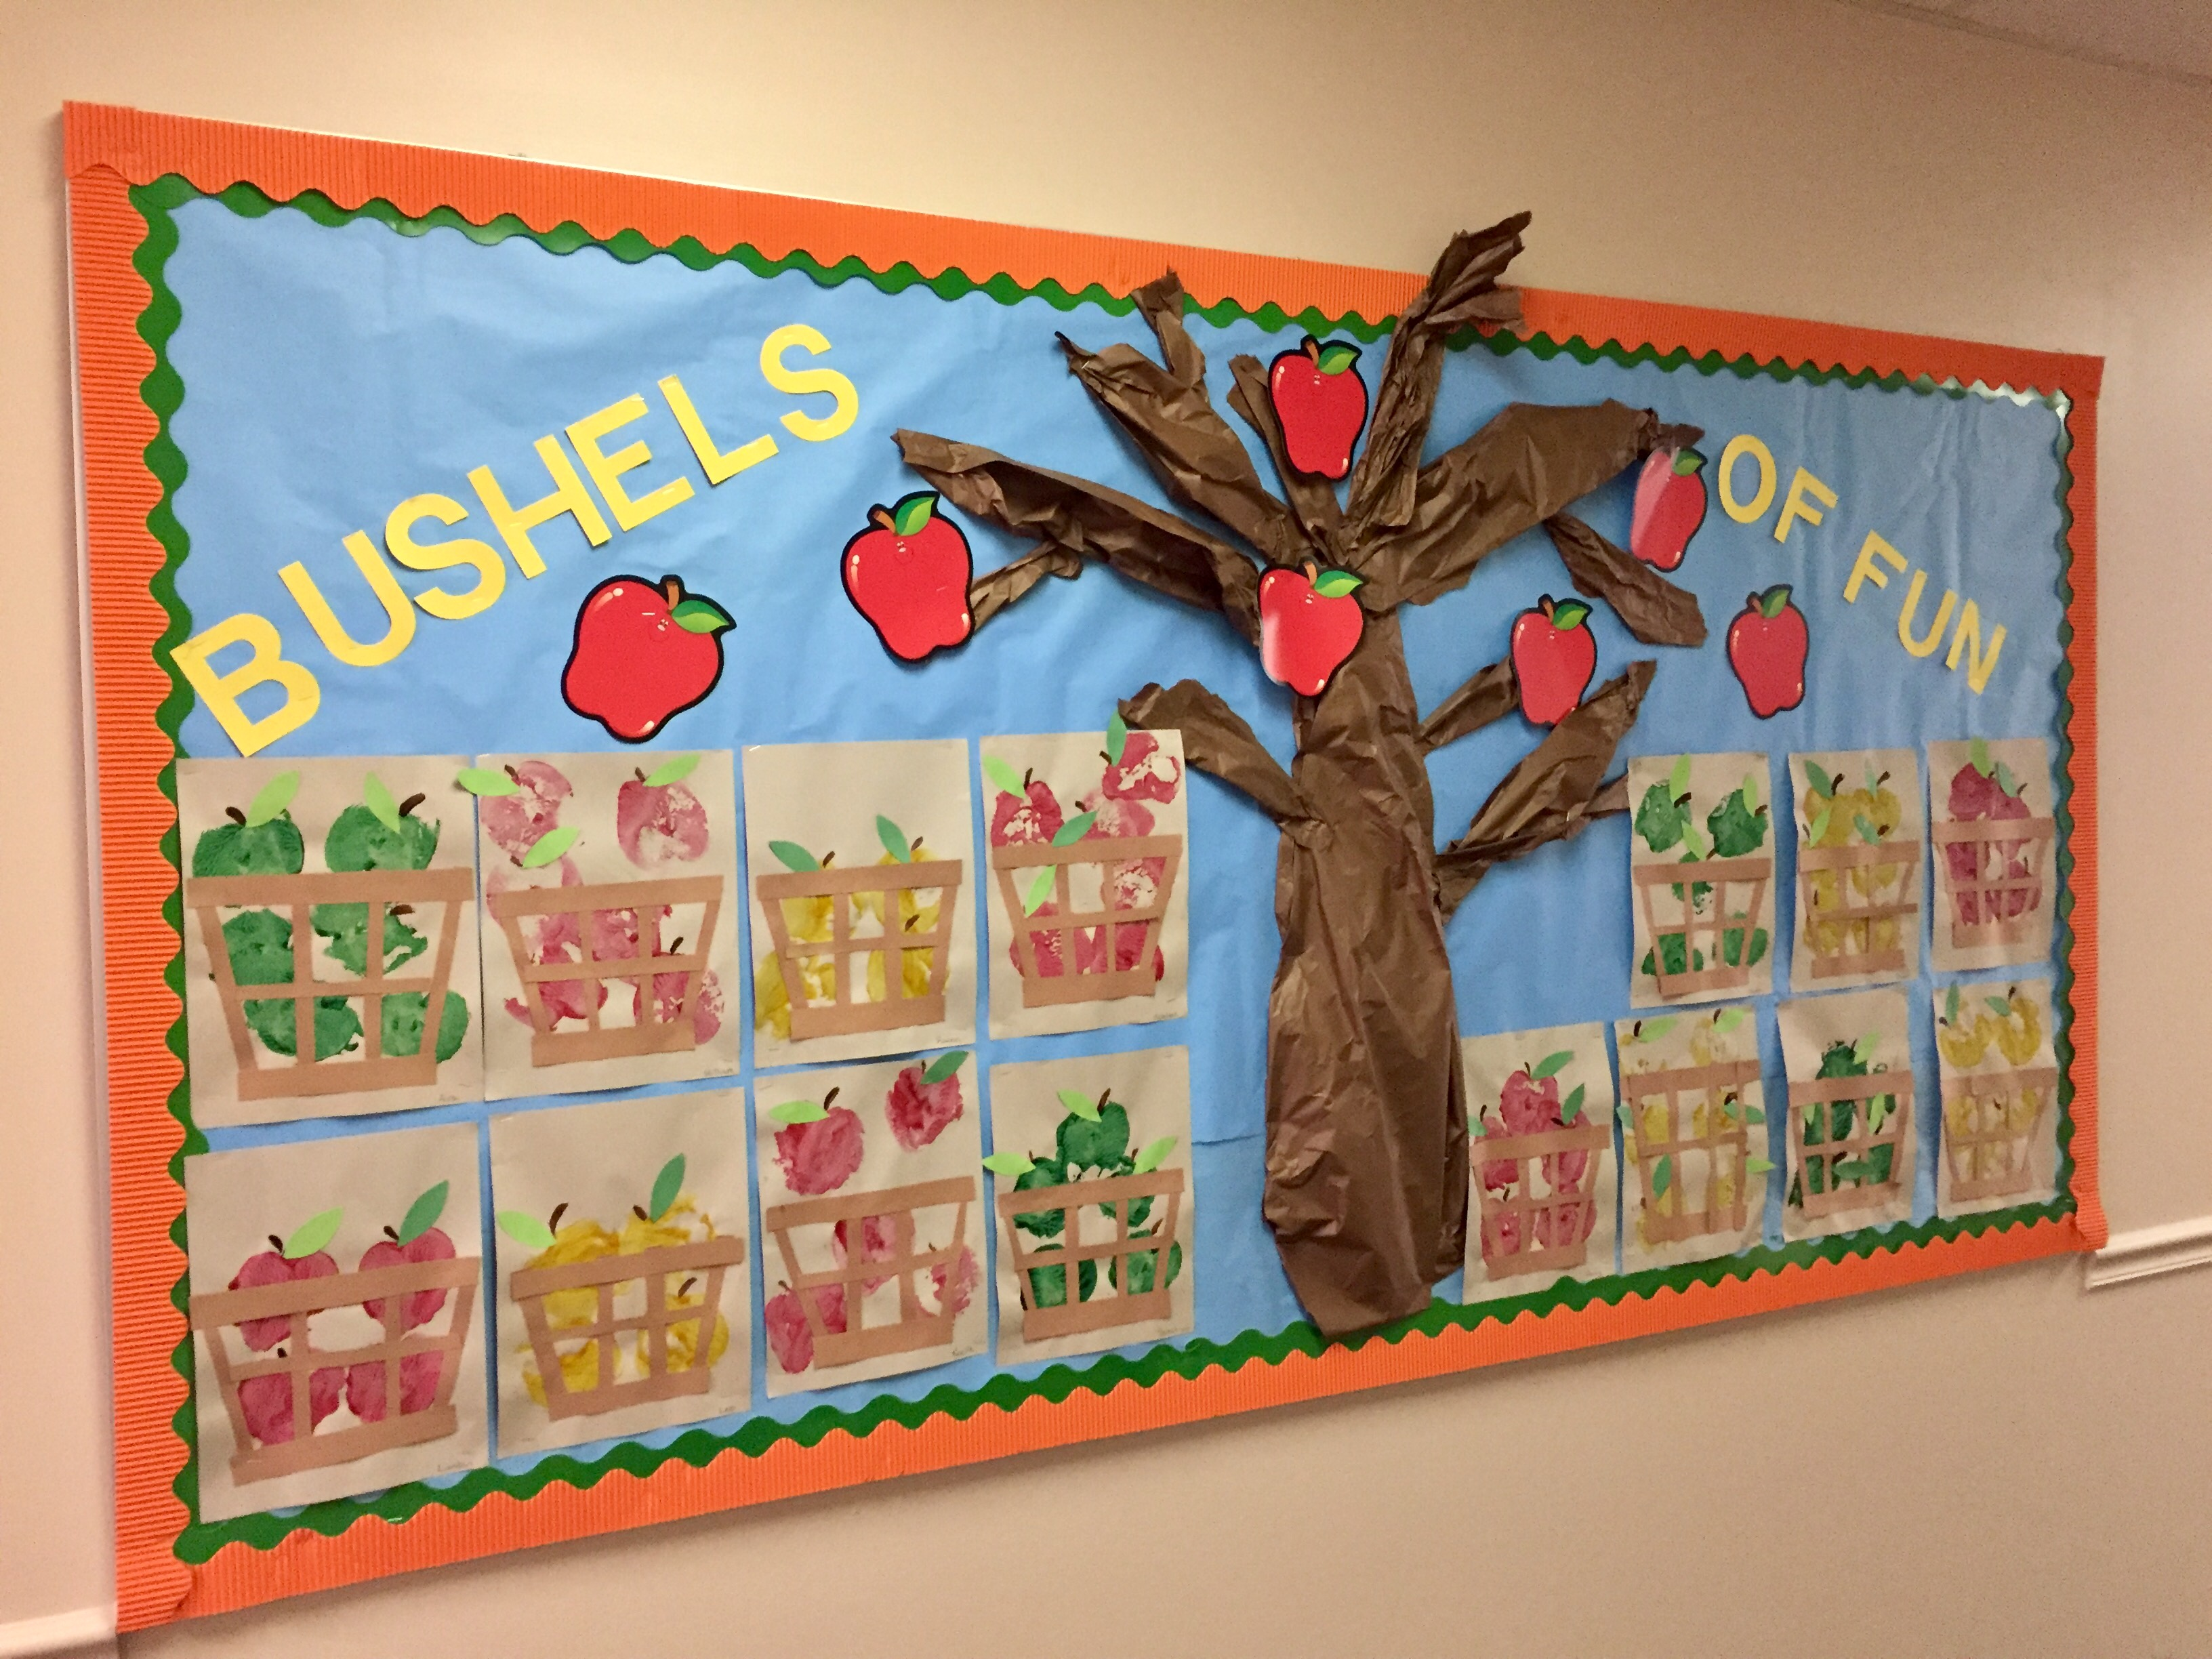 Our fall bulletin board that was created with our apple stamping projects.